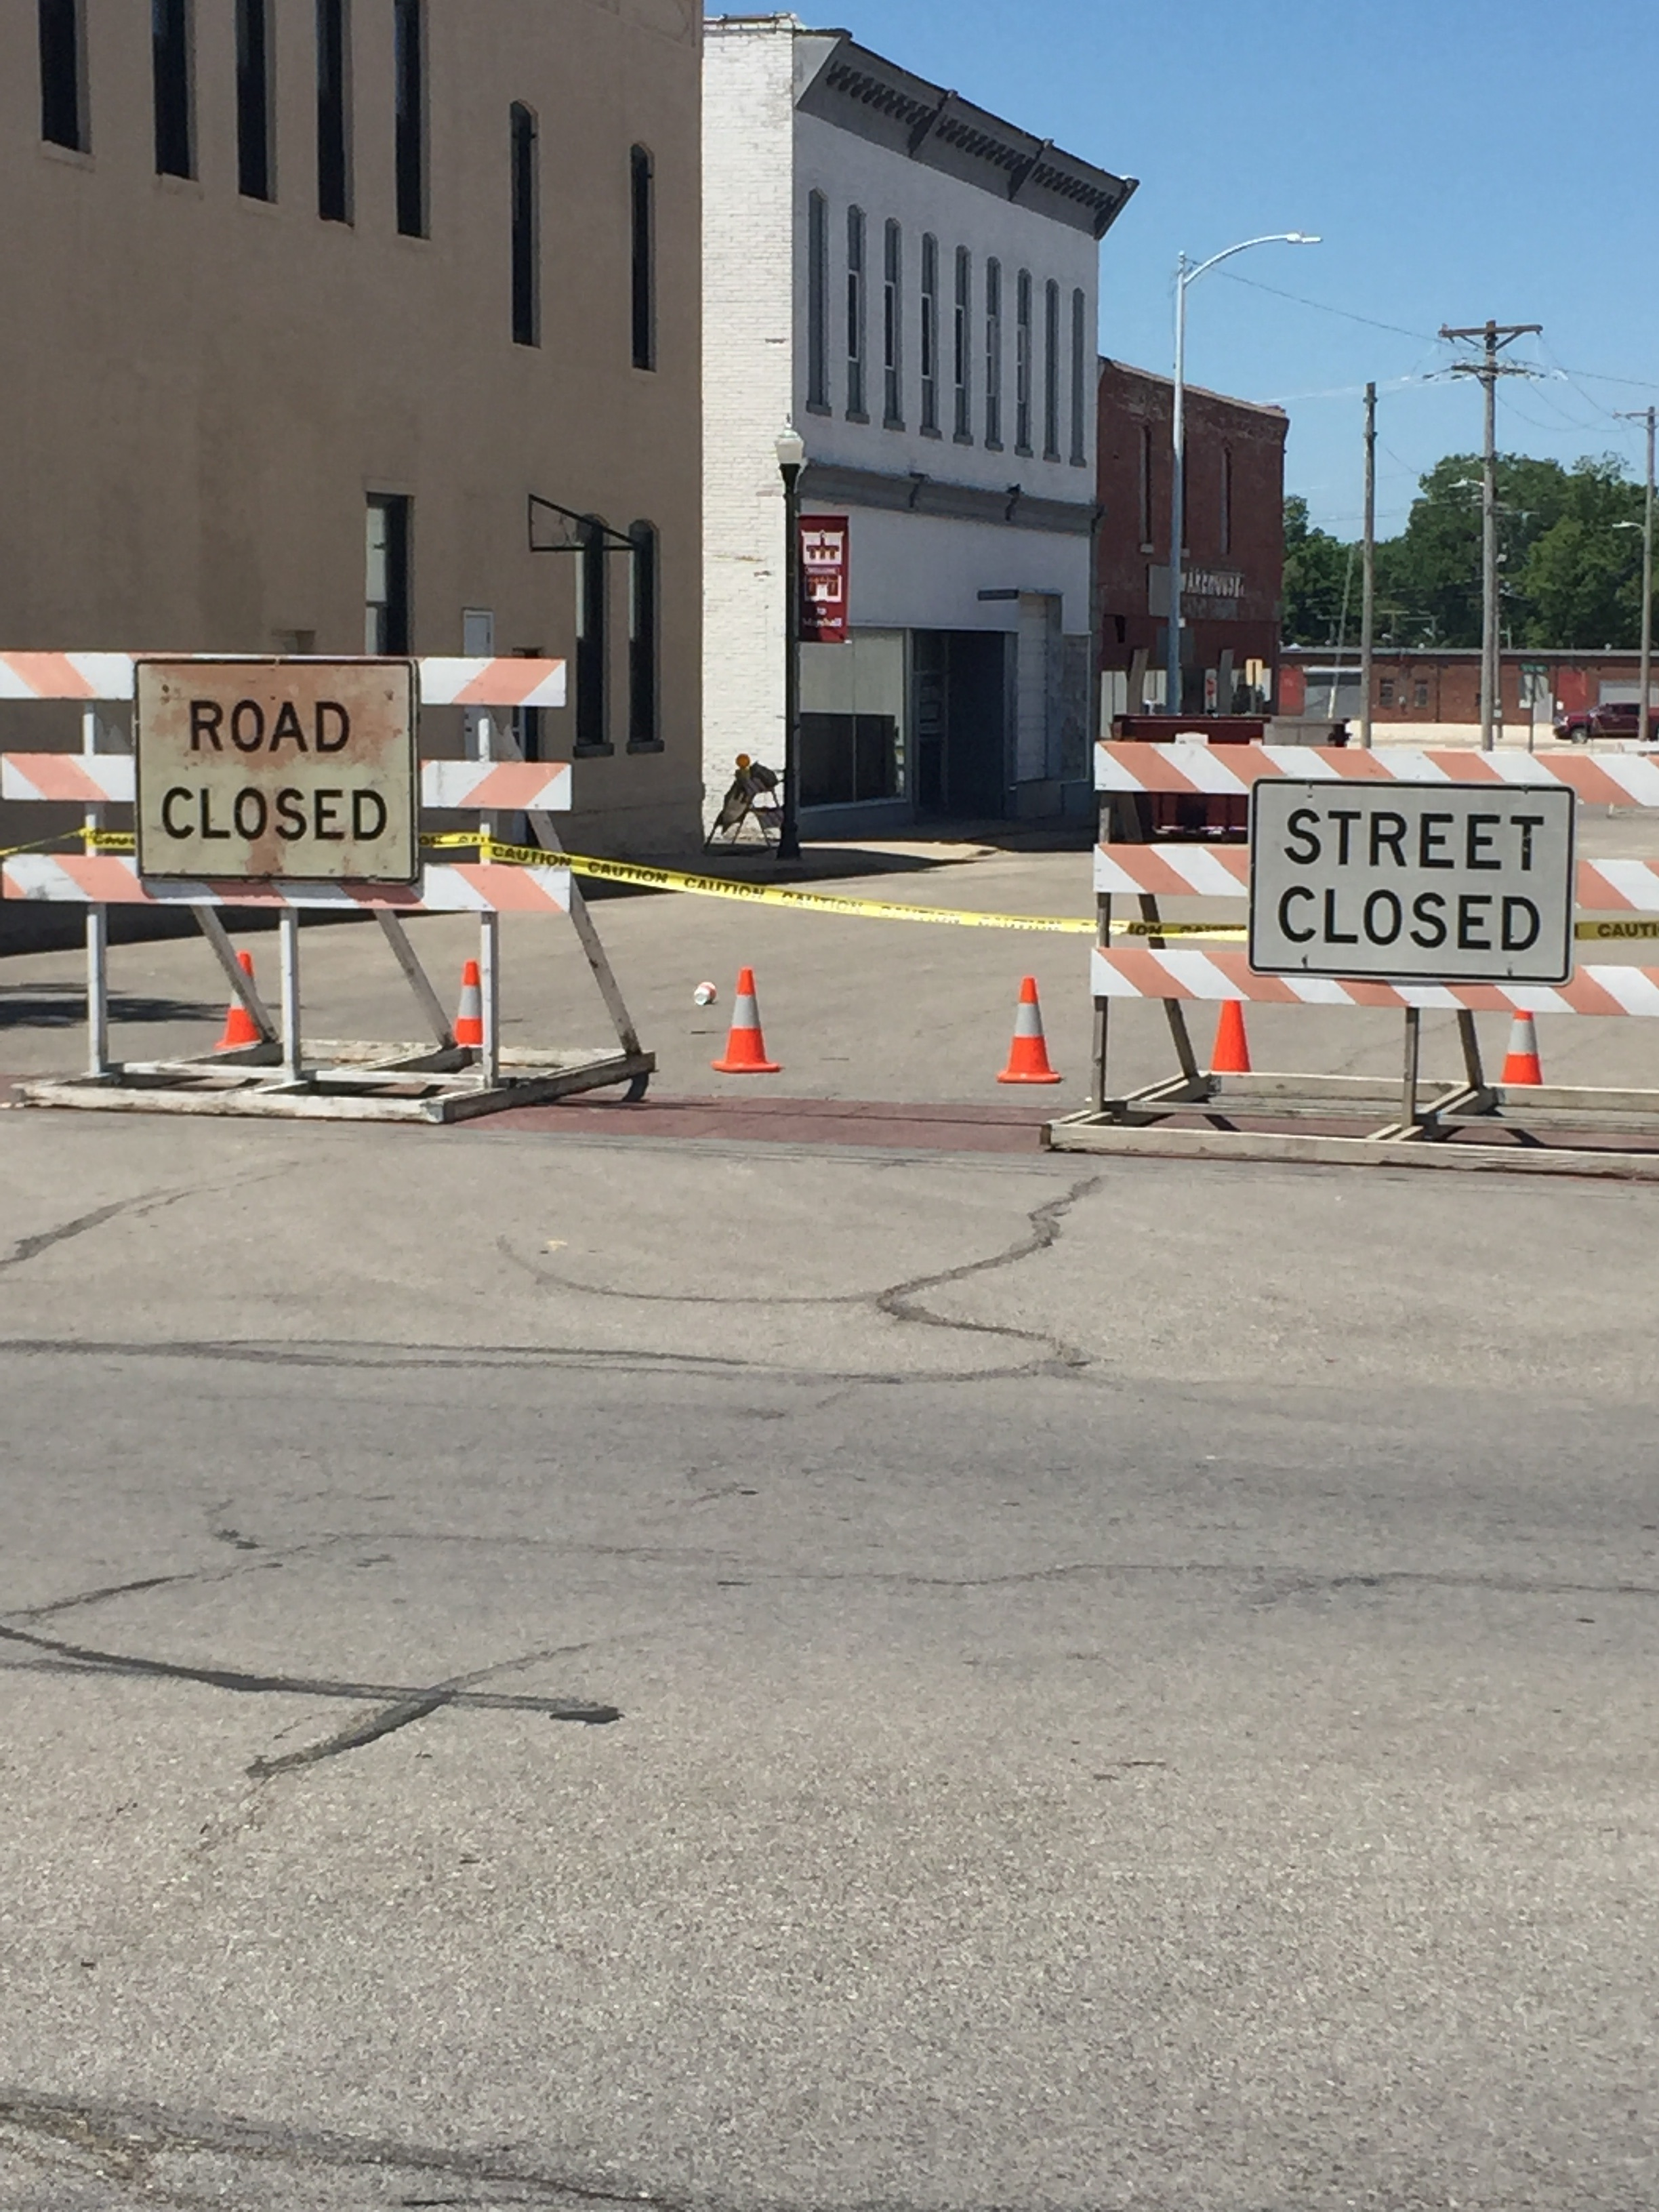 Street closures as dilapidated building continues to deteriorate